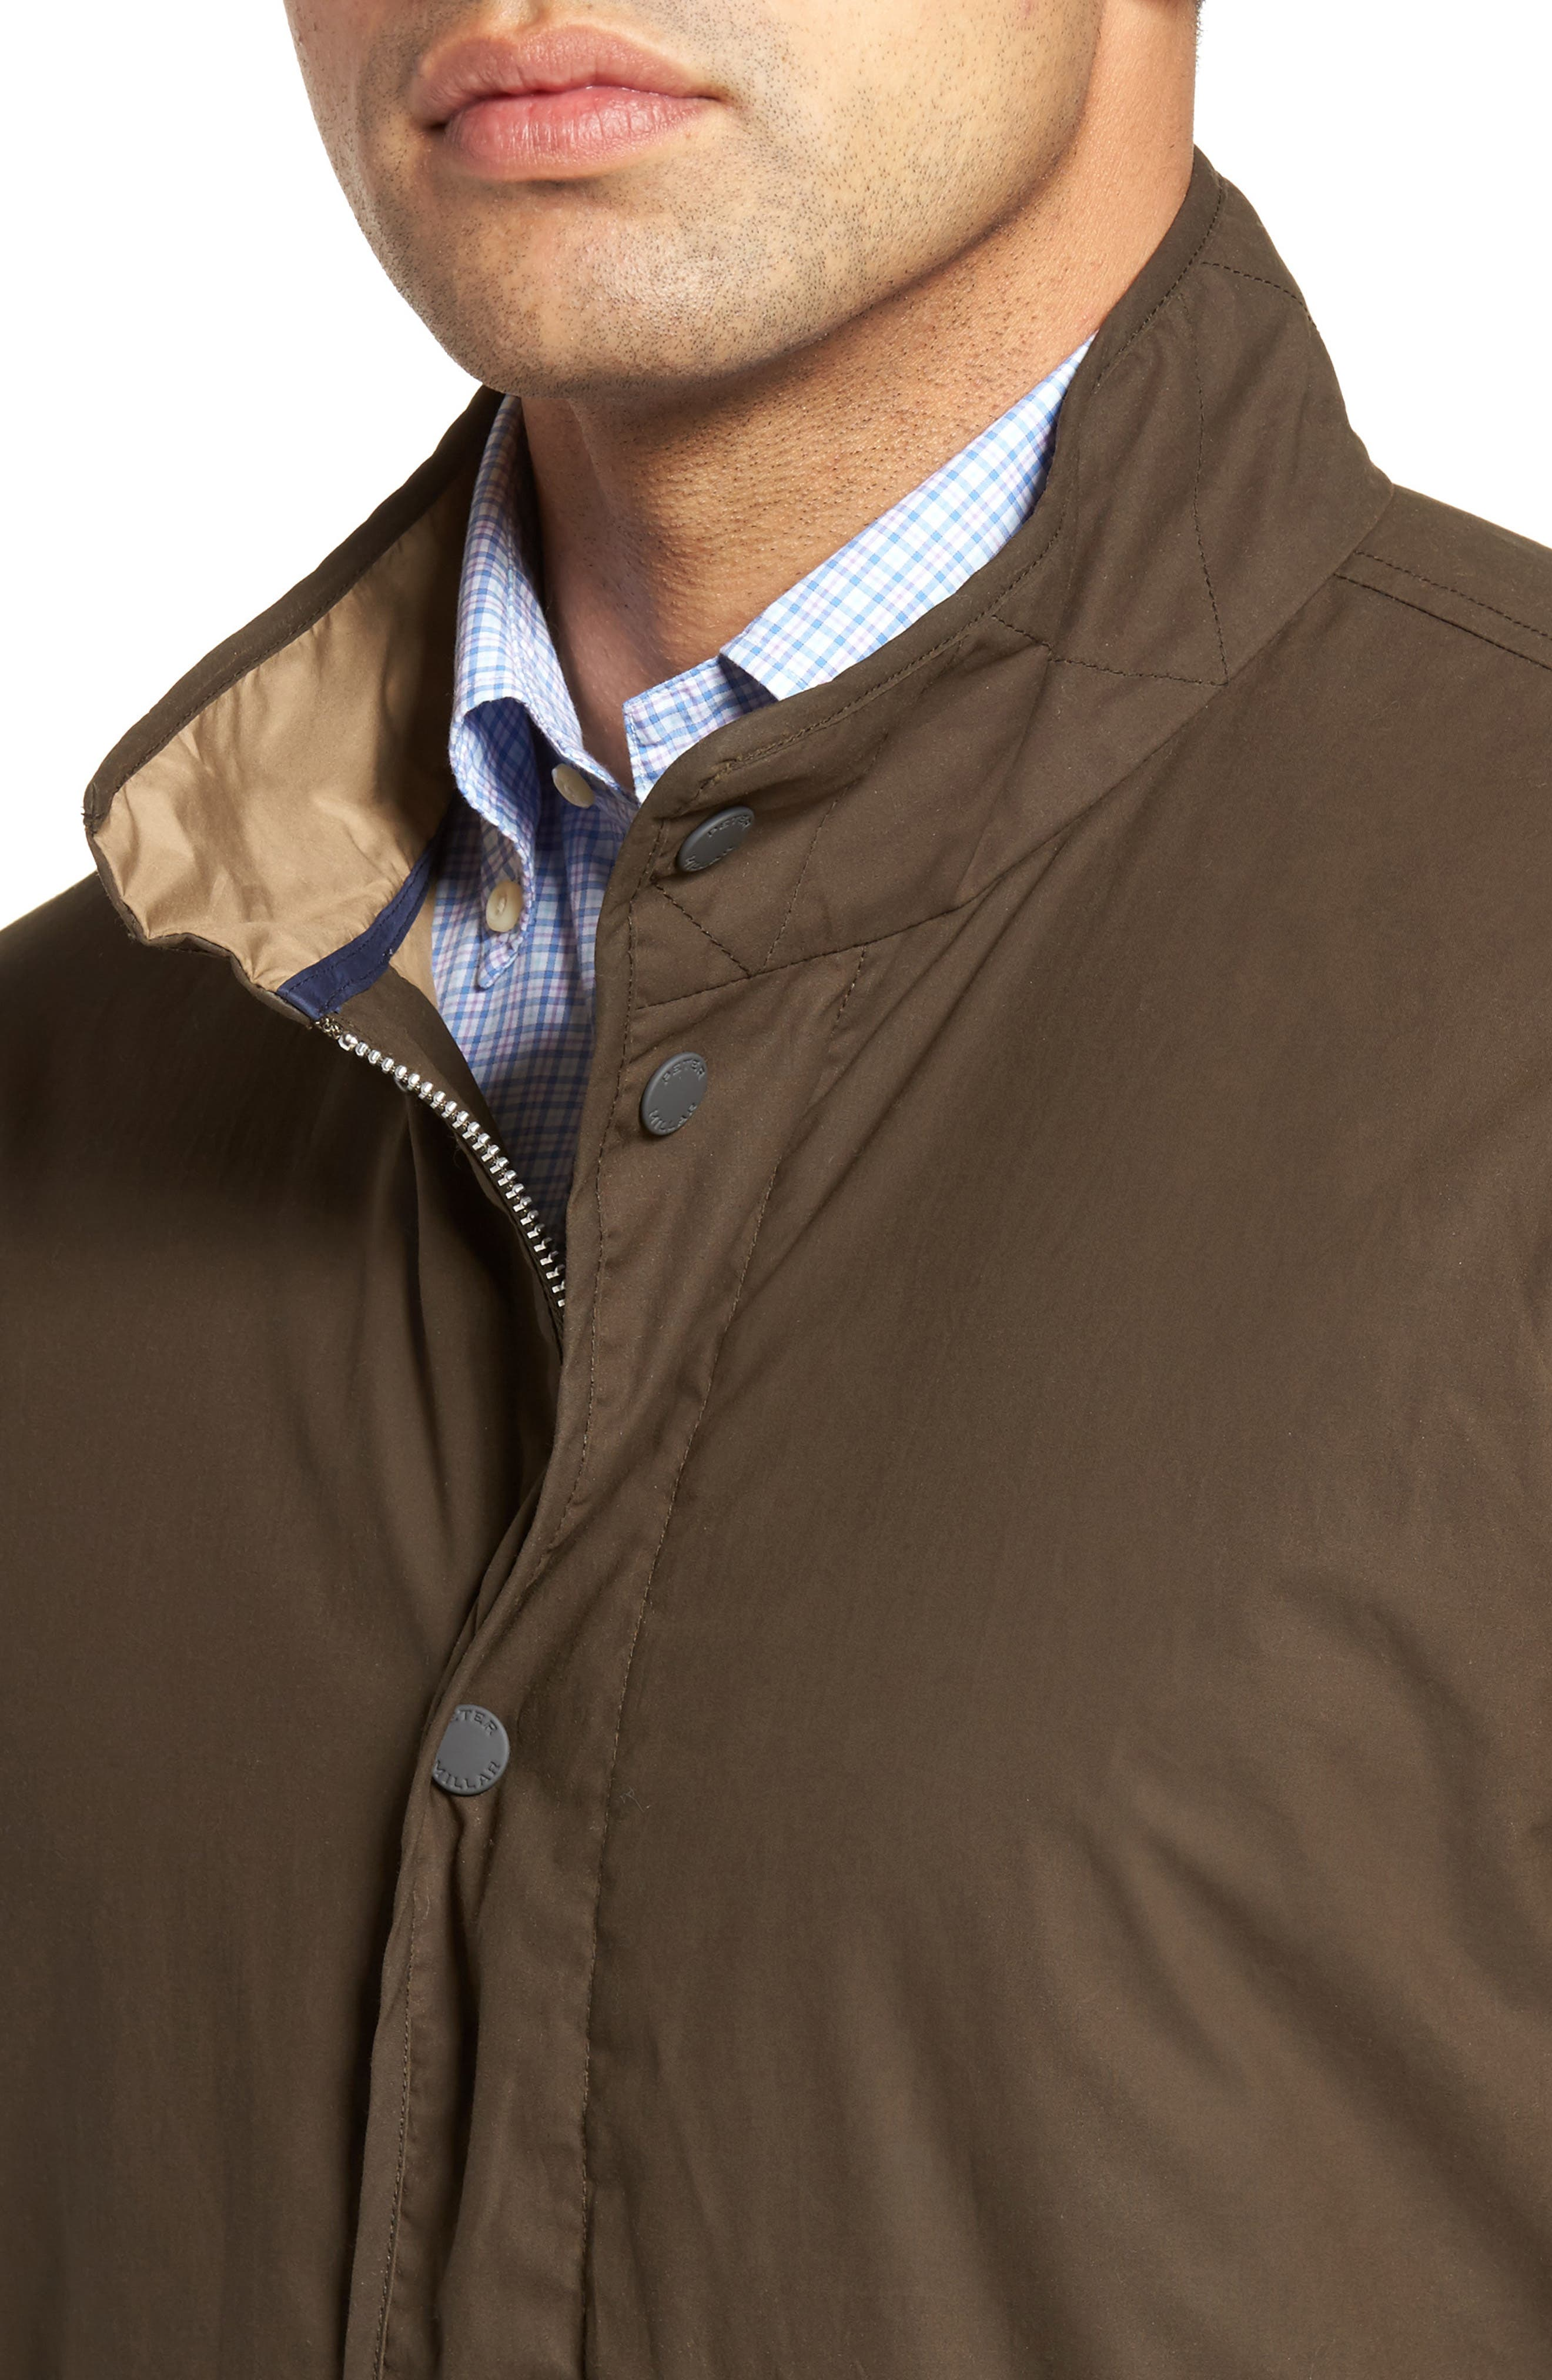 Harrison Wine Country Field Jacket,                             Alternate thumbnail 4, color,                             391